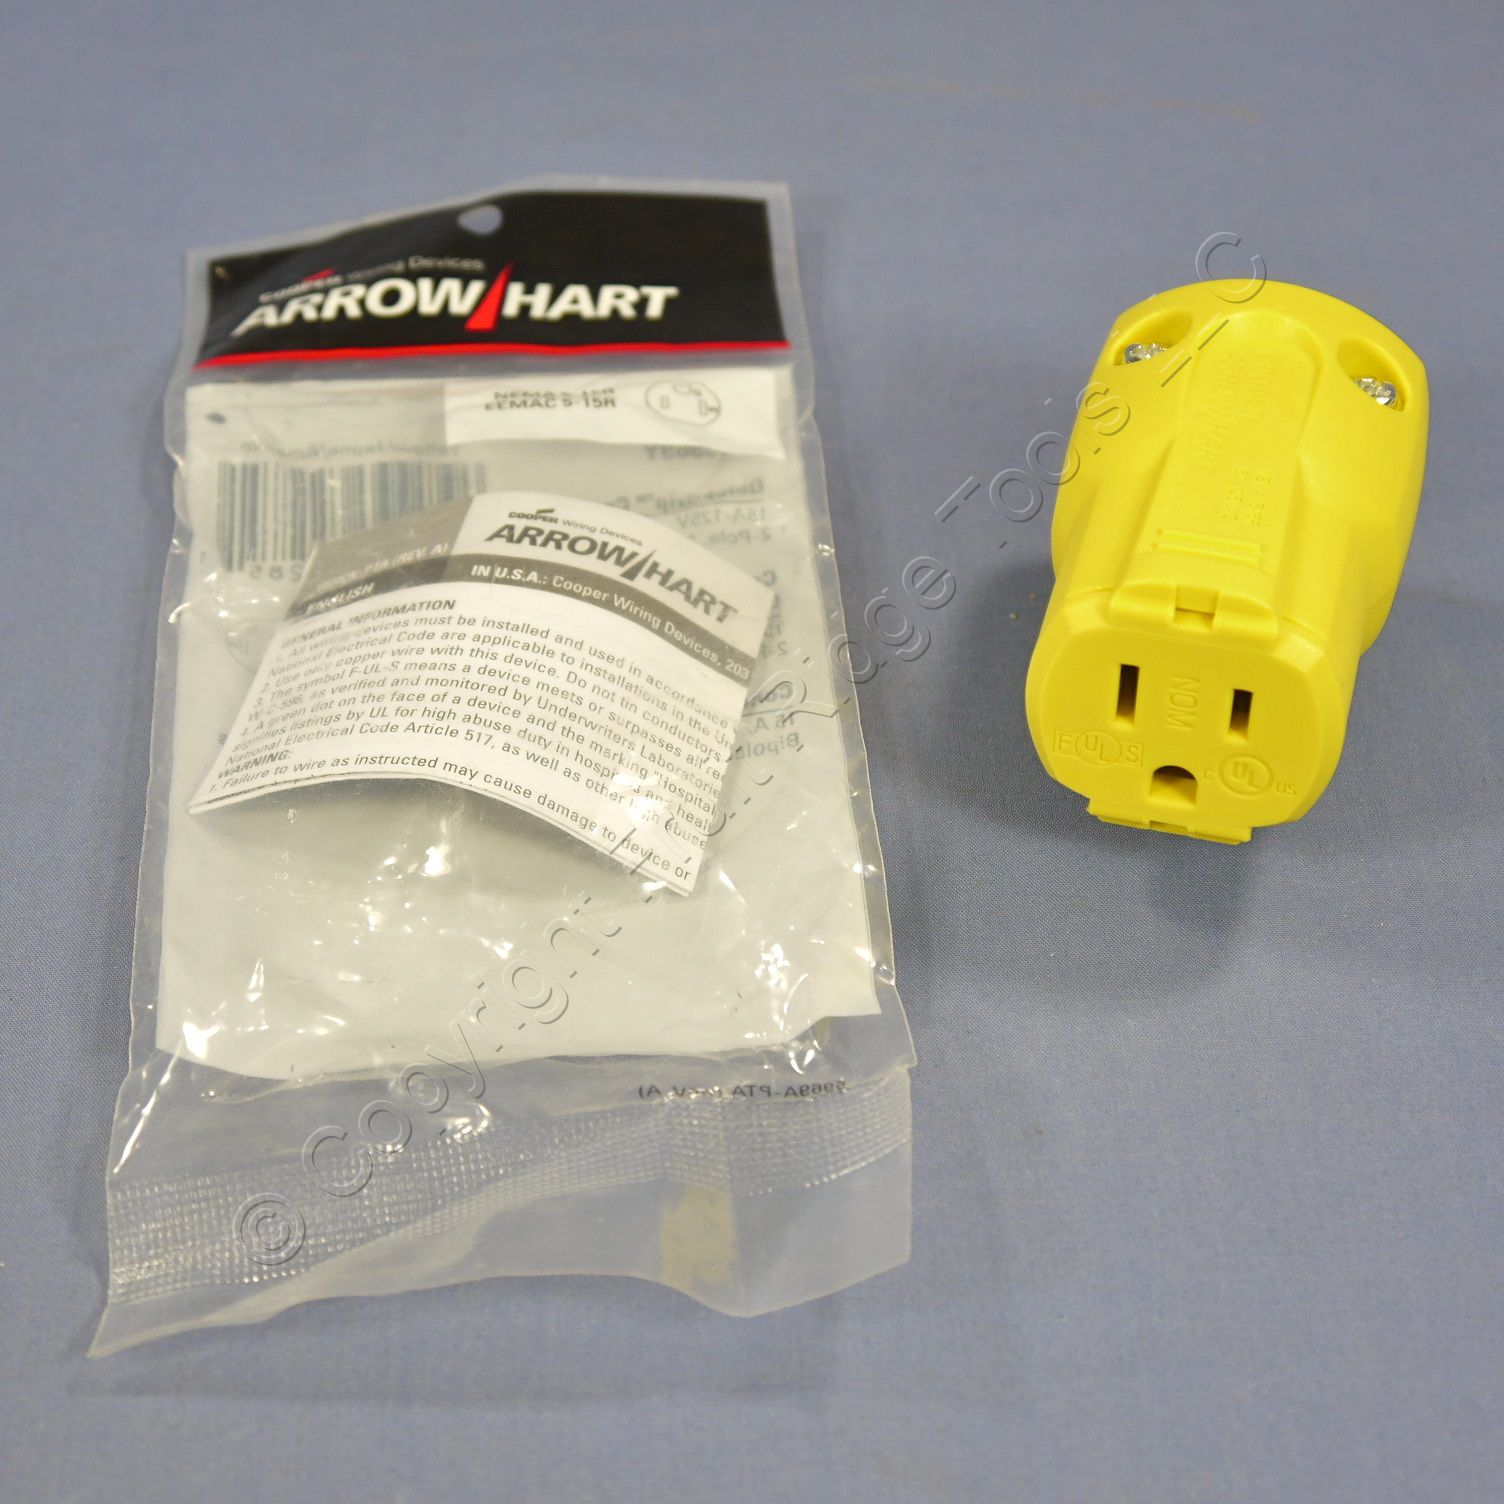 Cooper Arrow Hart Yellow QuickGrip Straight Blade Plug 2P3W NEMA 5-15 15A 125V AH5969Y